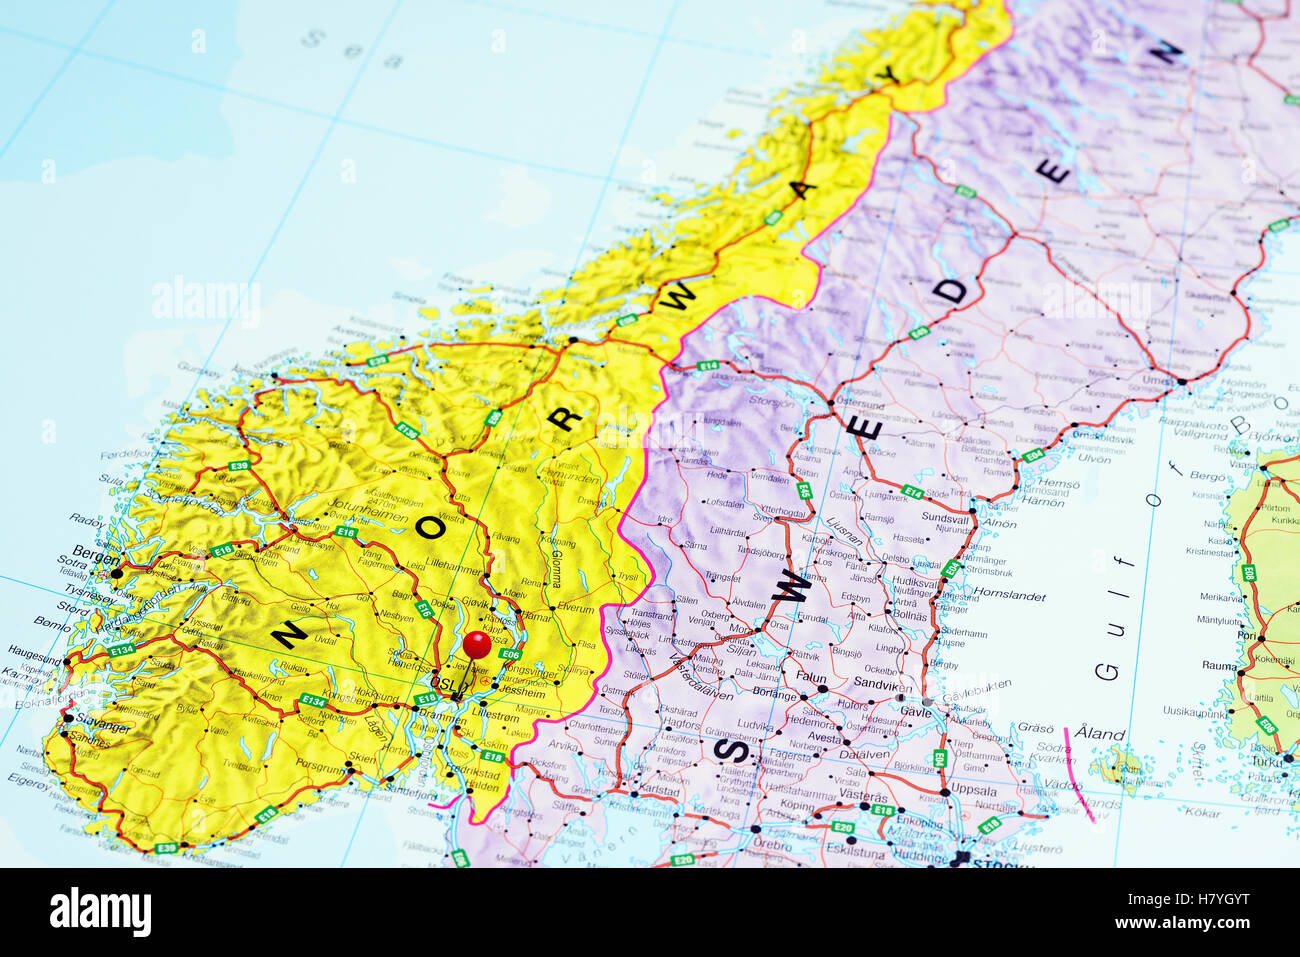 Oslo Pinned On A Map Of Norway Stock Photo Royalty Free Image - Where is norway on a map